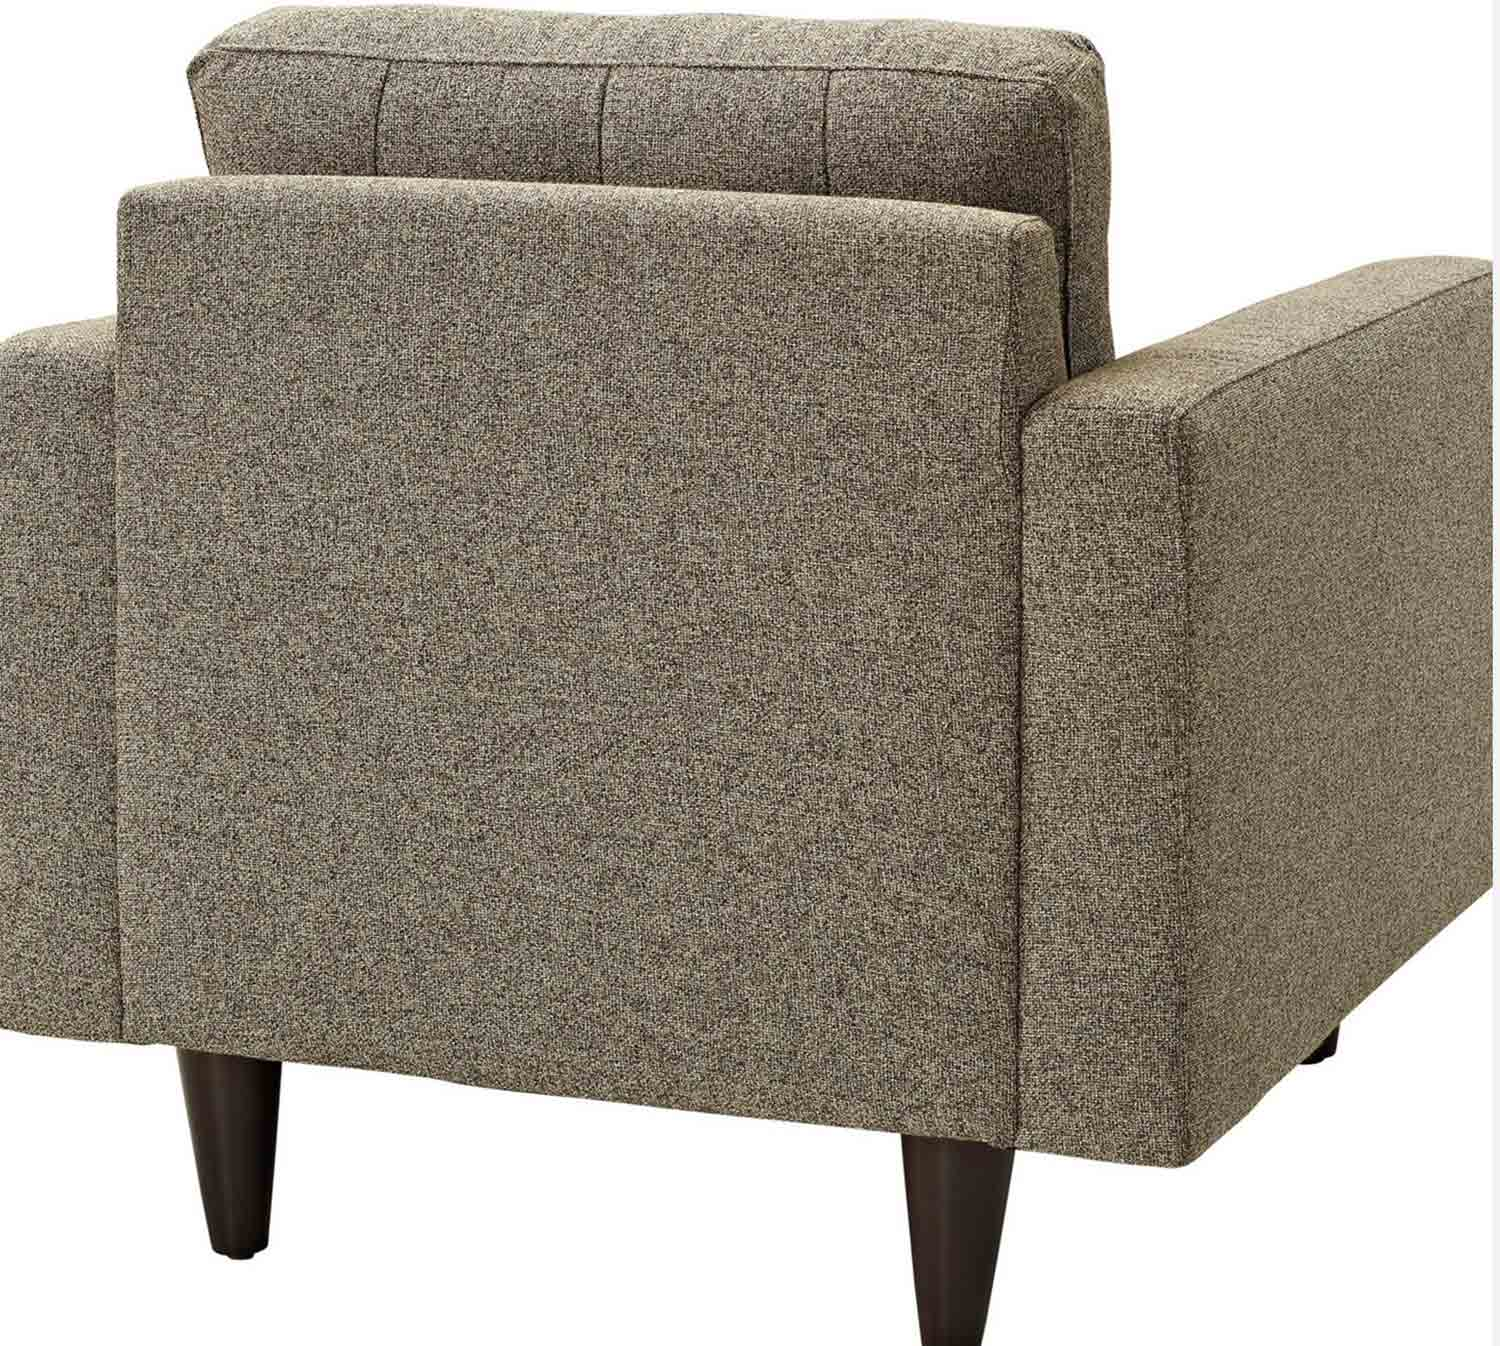 Modway Empress Upholstered Armchair - Oatmeal